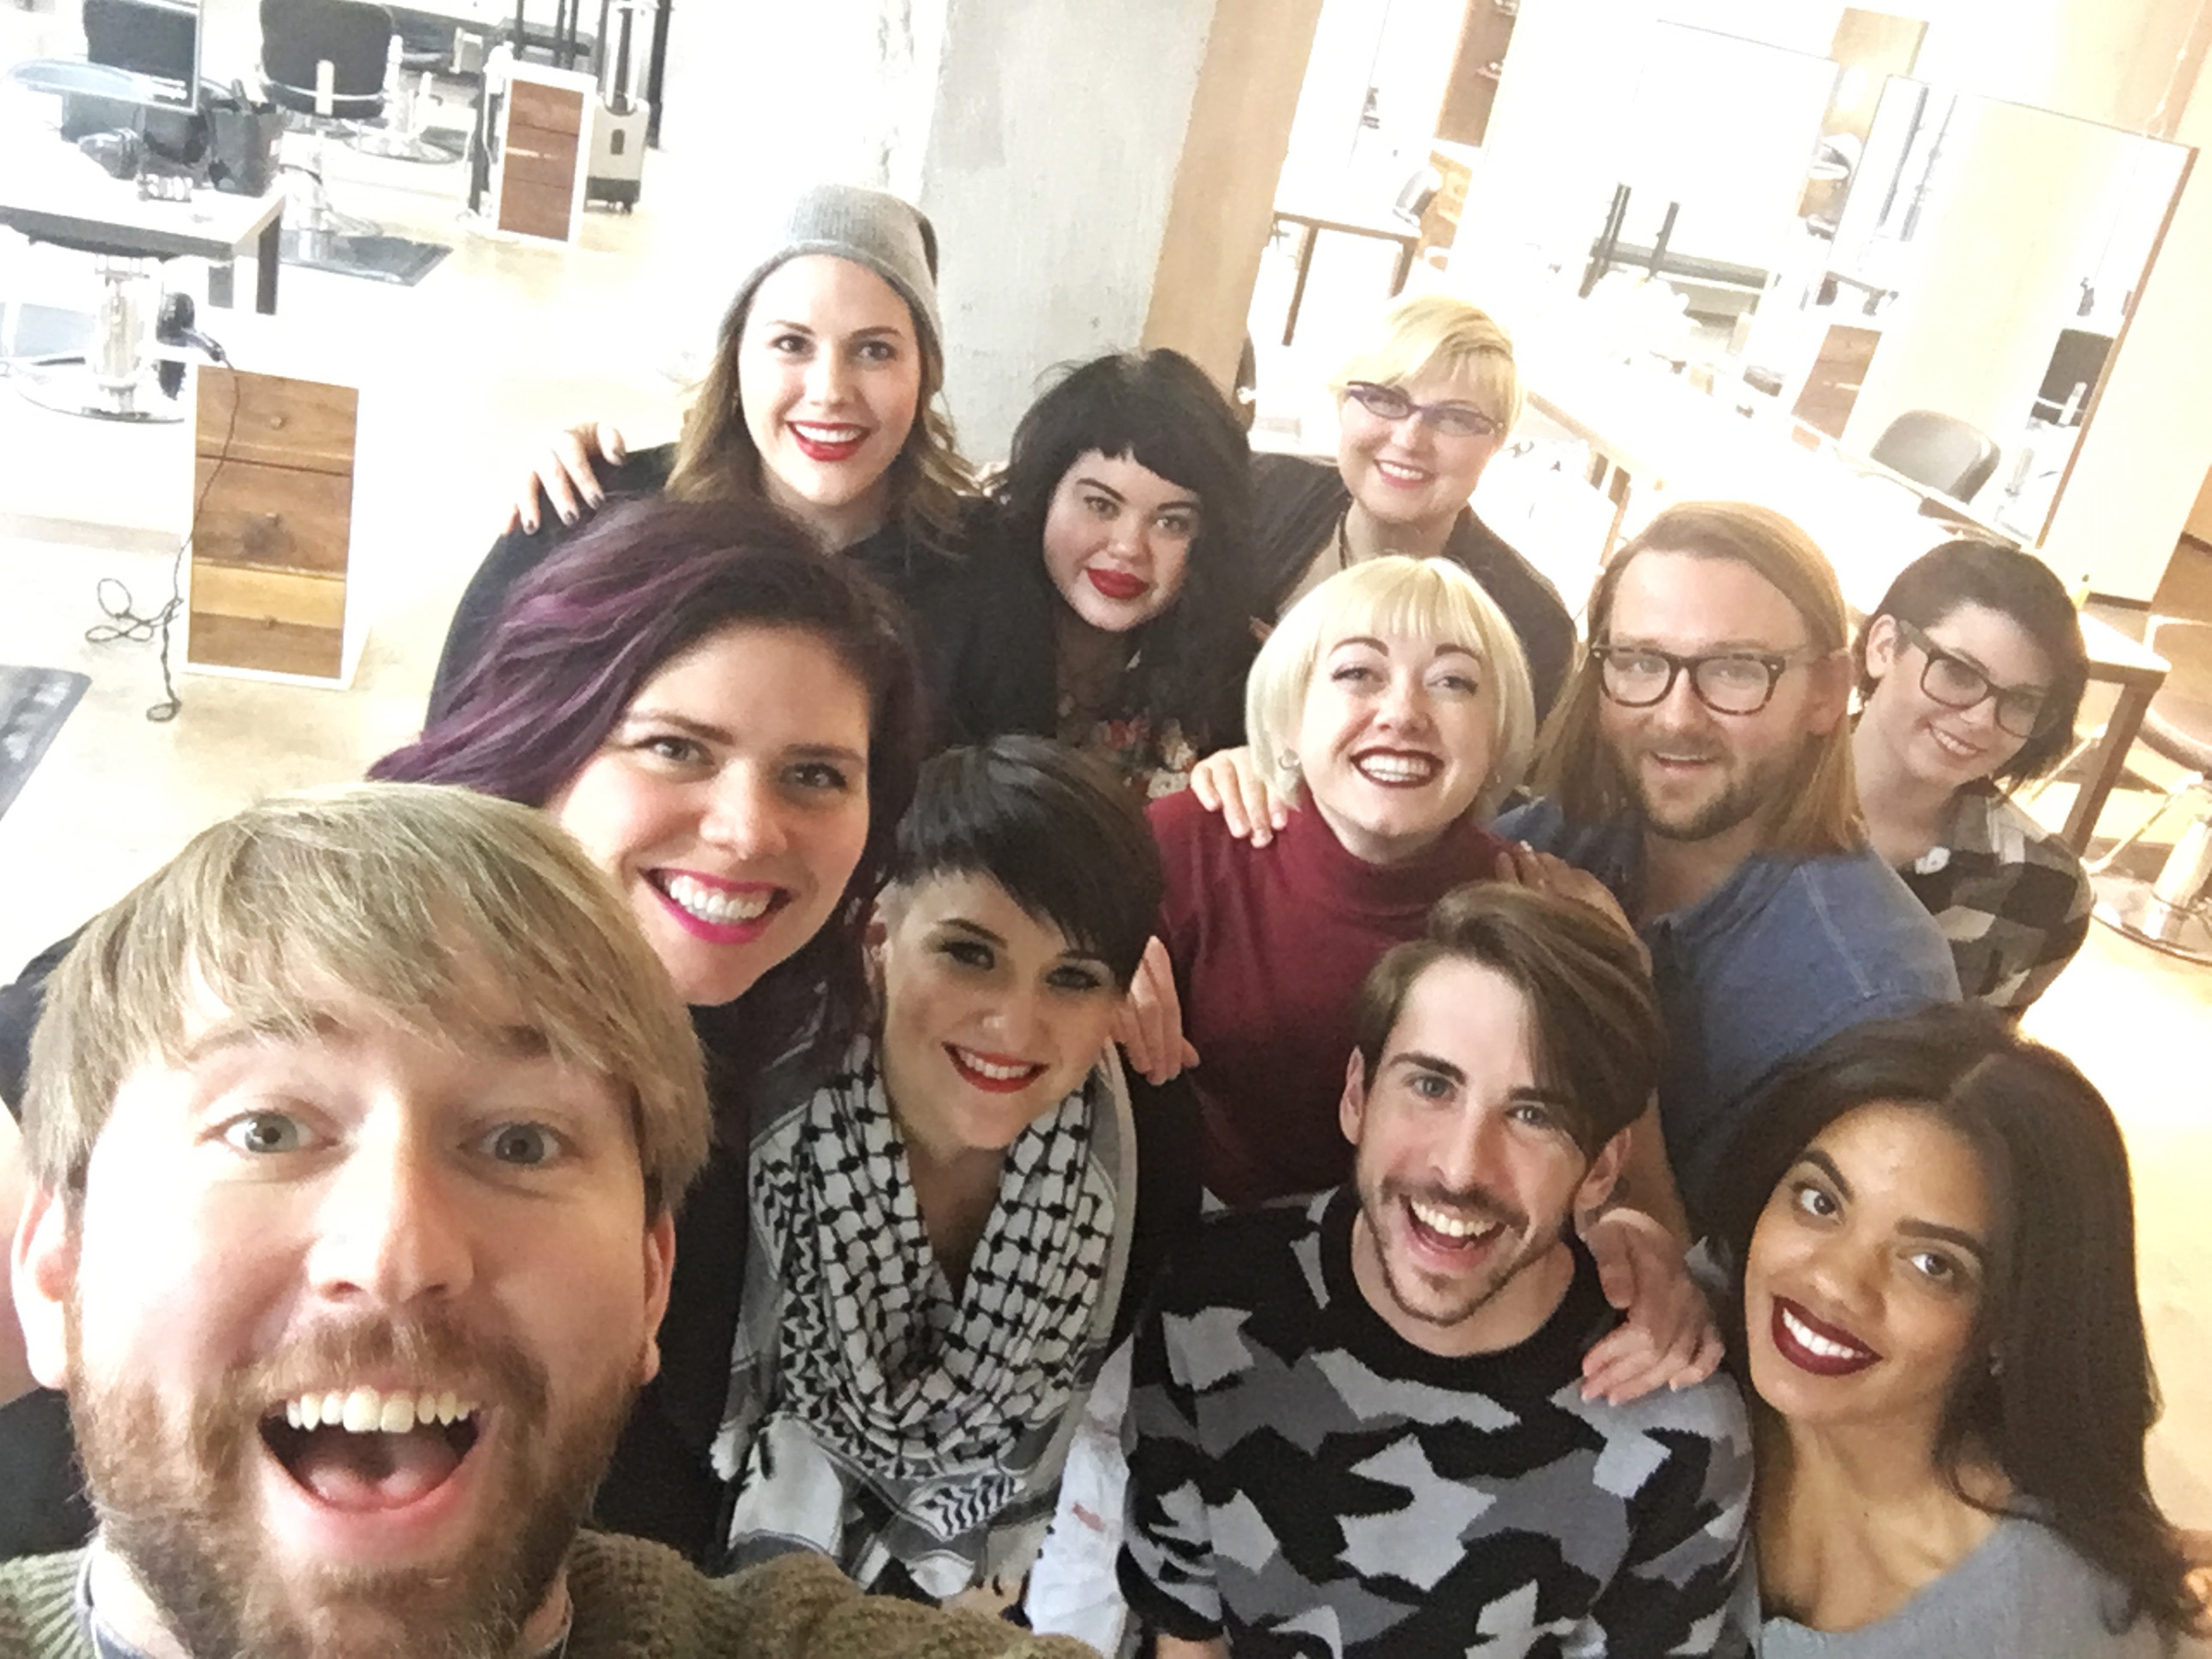 Some of the HAUS Salon team who supported the cause by donating their services